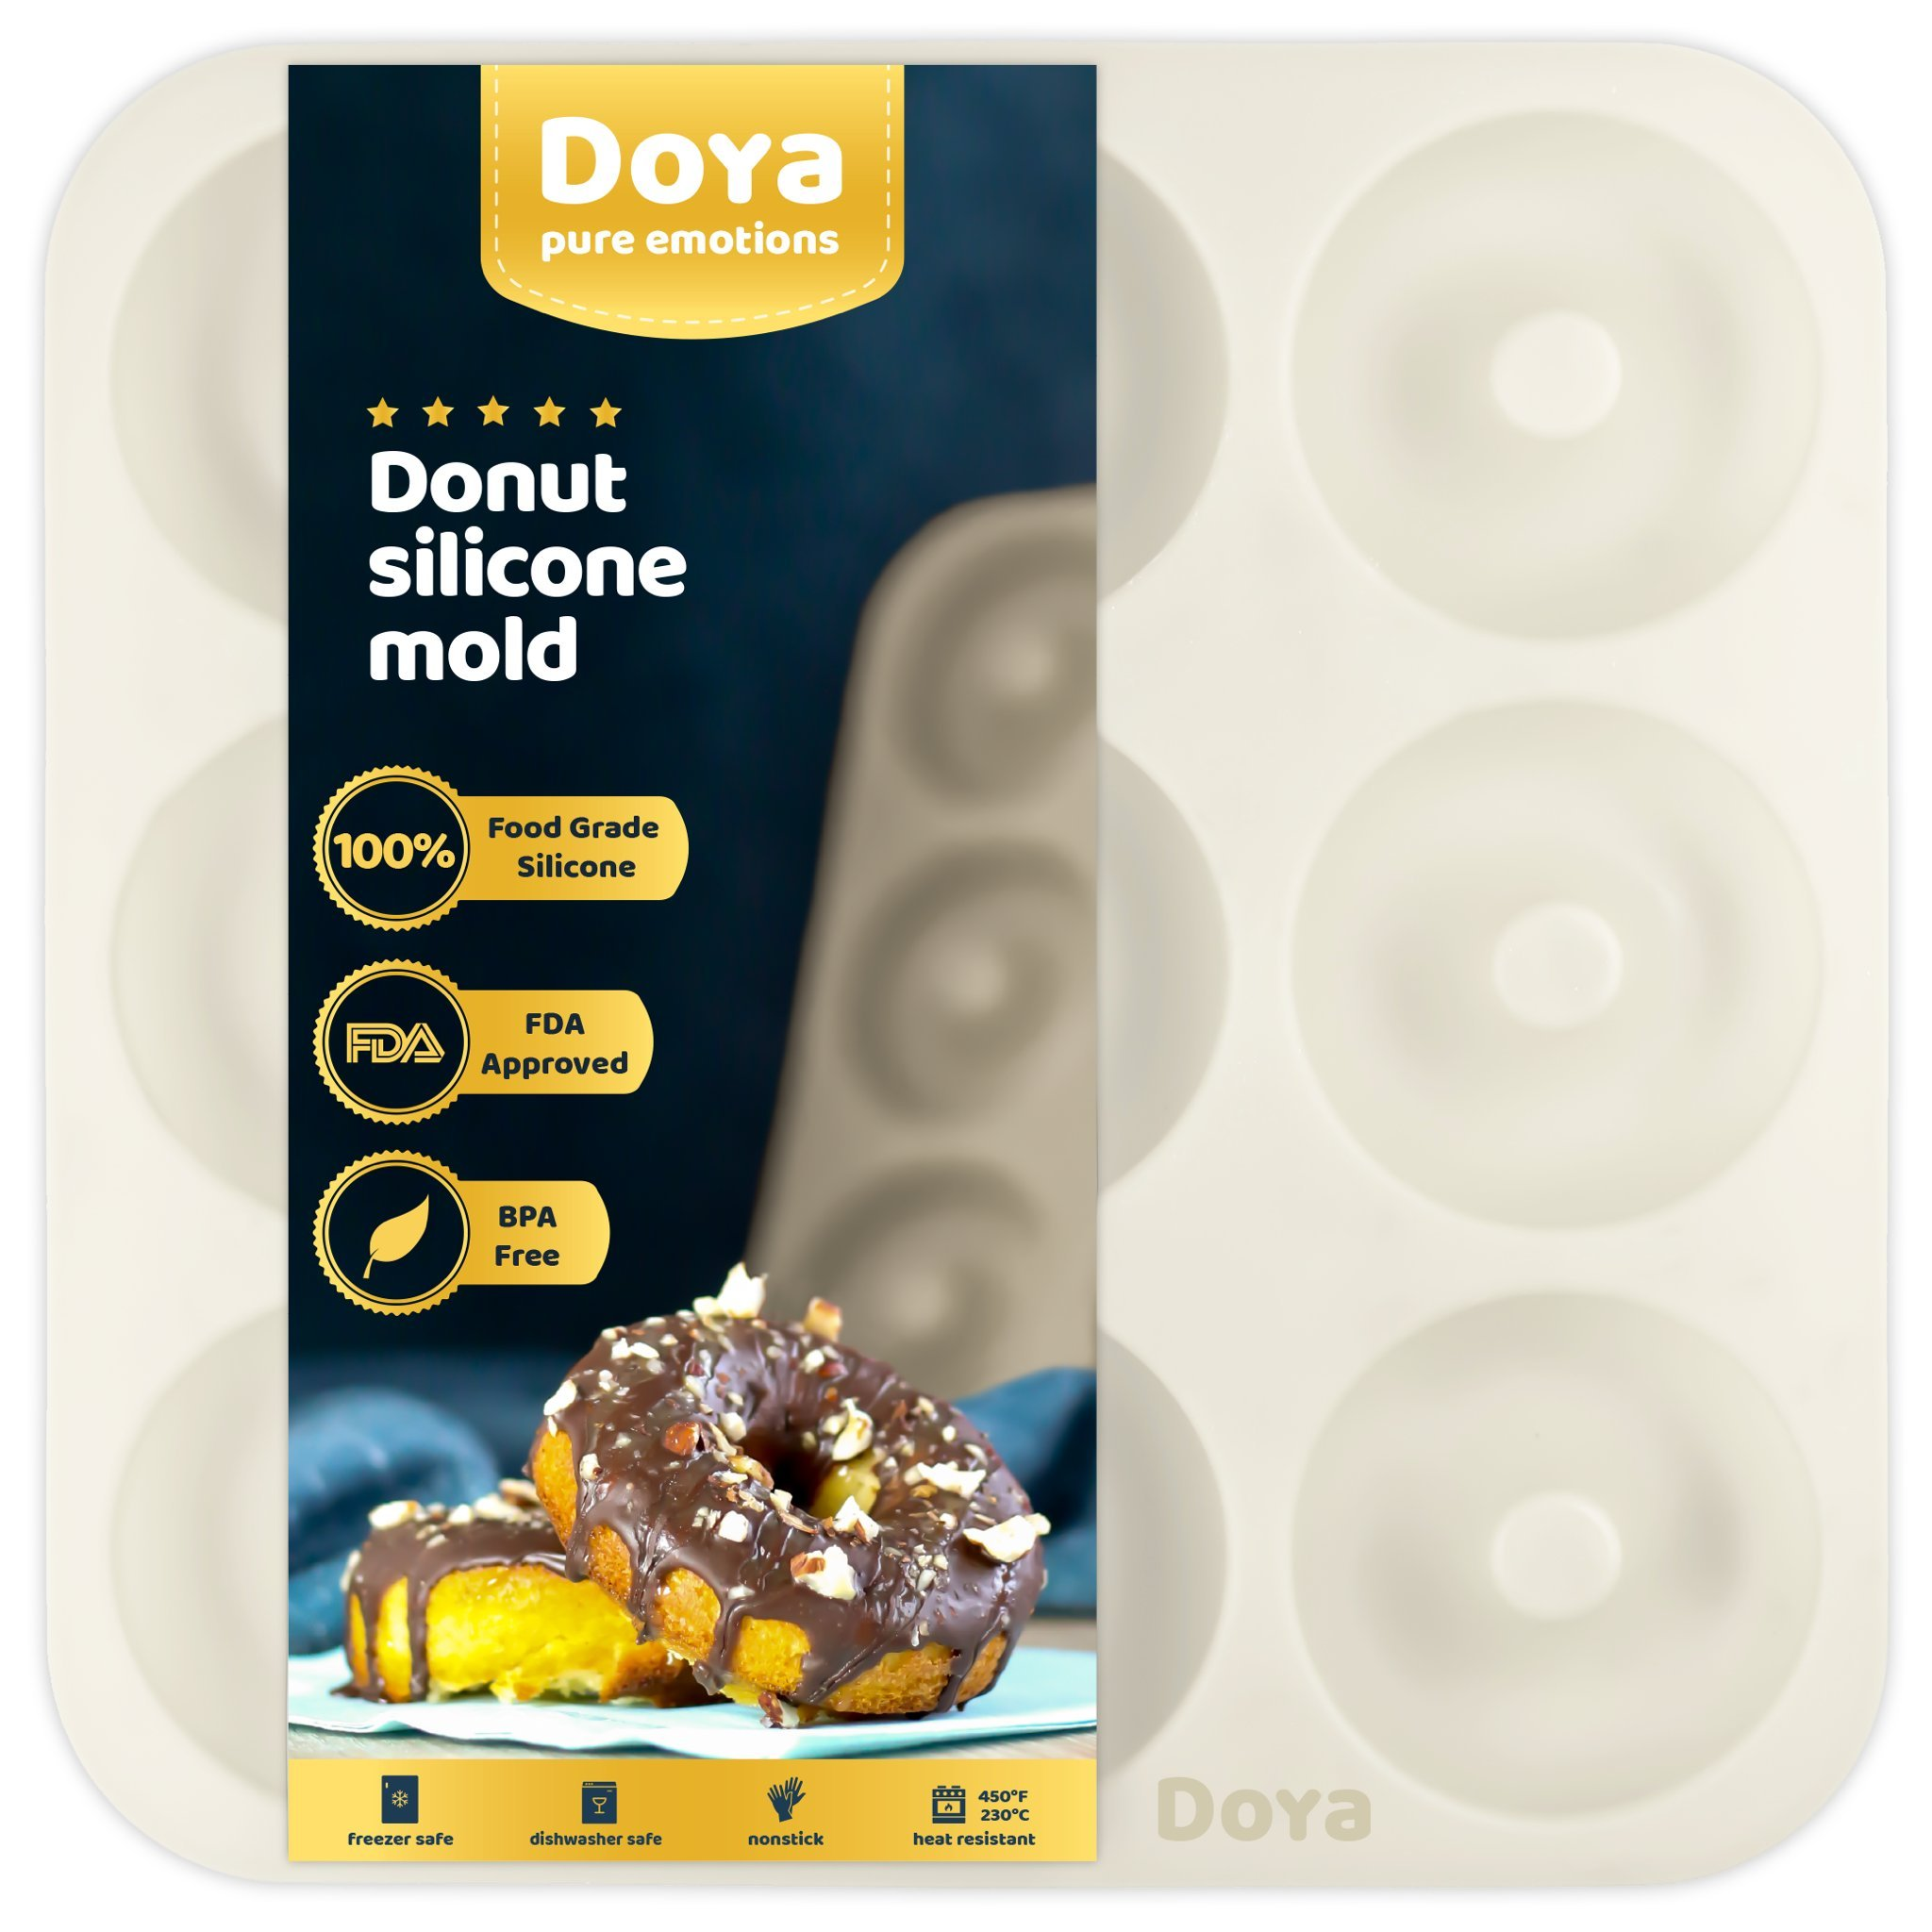 Premium Silicone Donut Pan - Best For Baking Full Size Doughnuts | FDA approved | BBA free | 100% Food Grade Silicone | 9 Cavity Doughnut Pan Makes A Great Gift